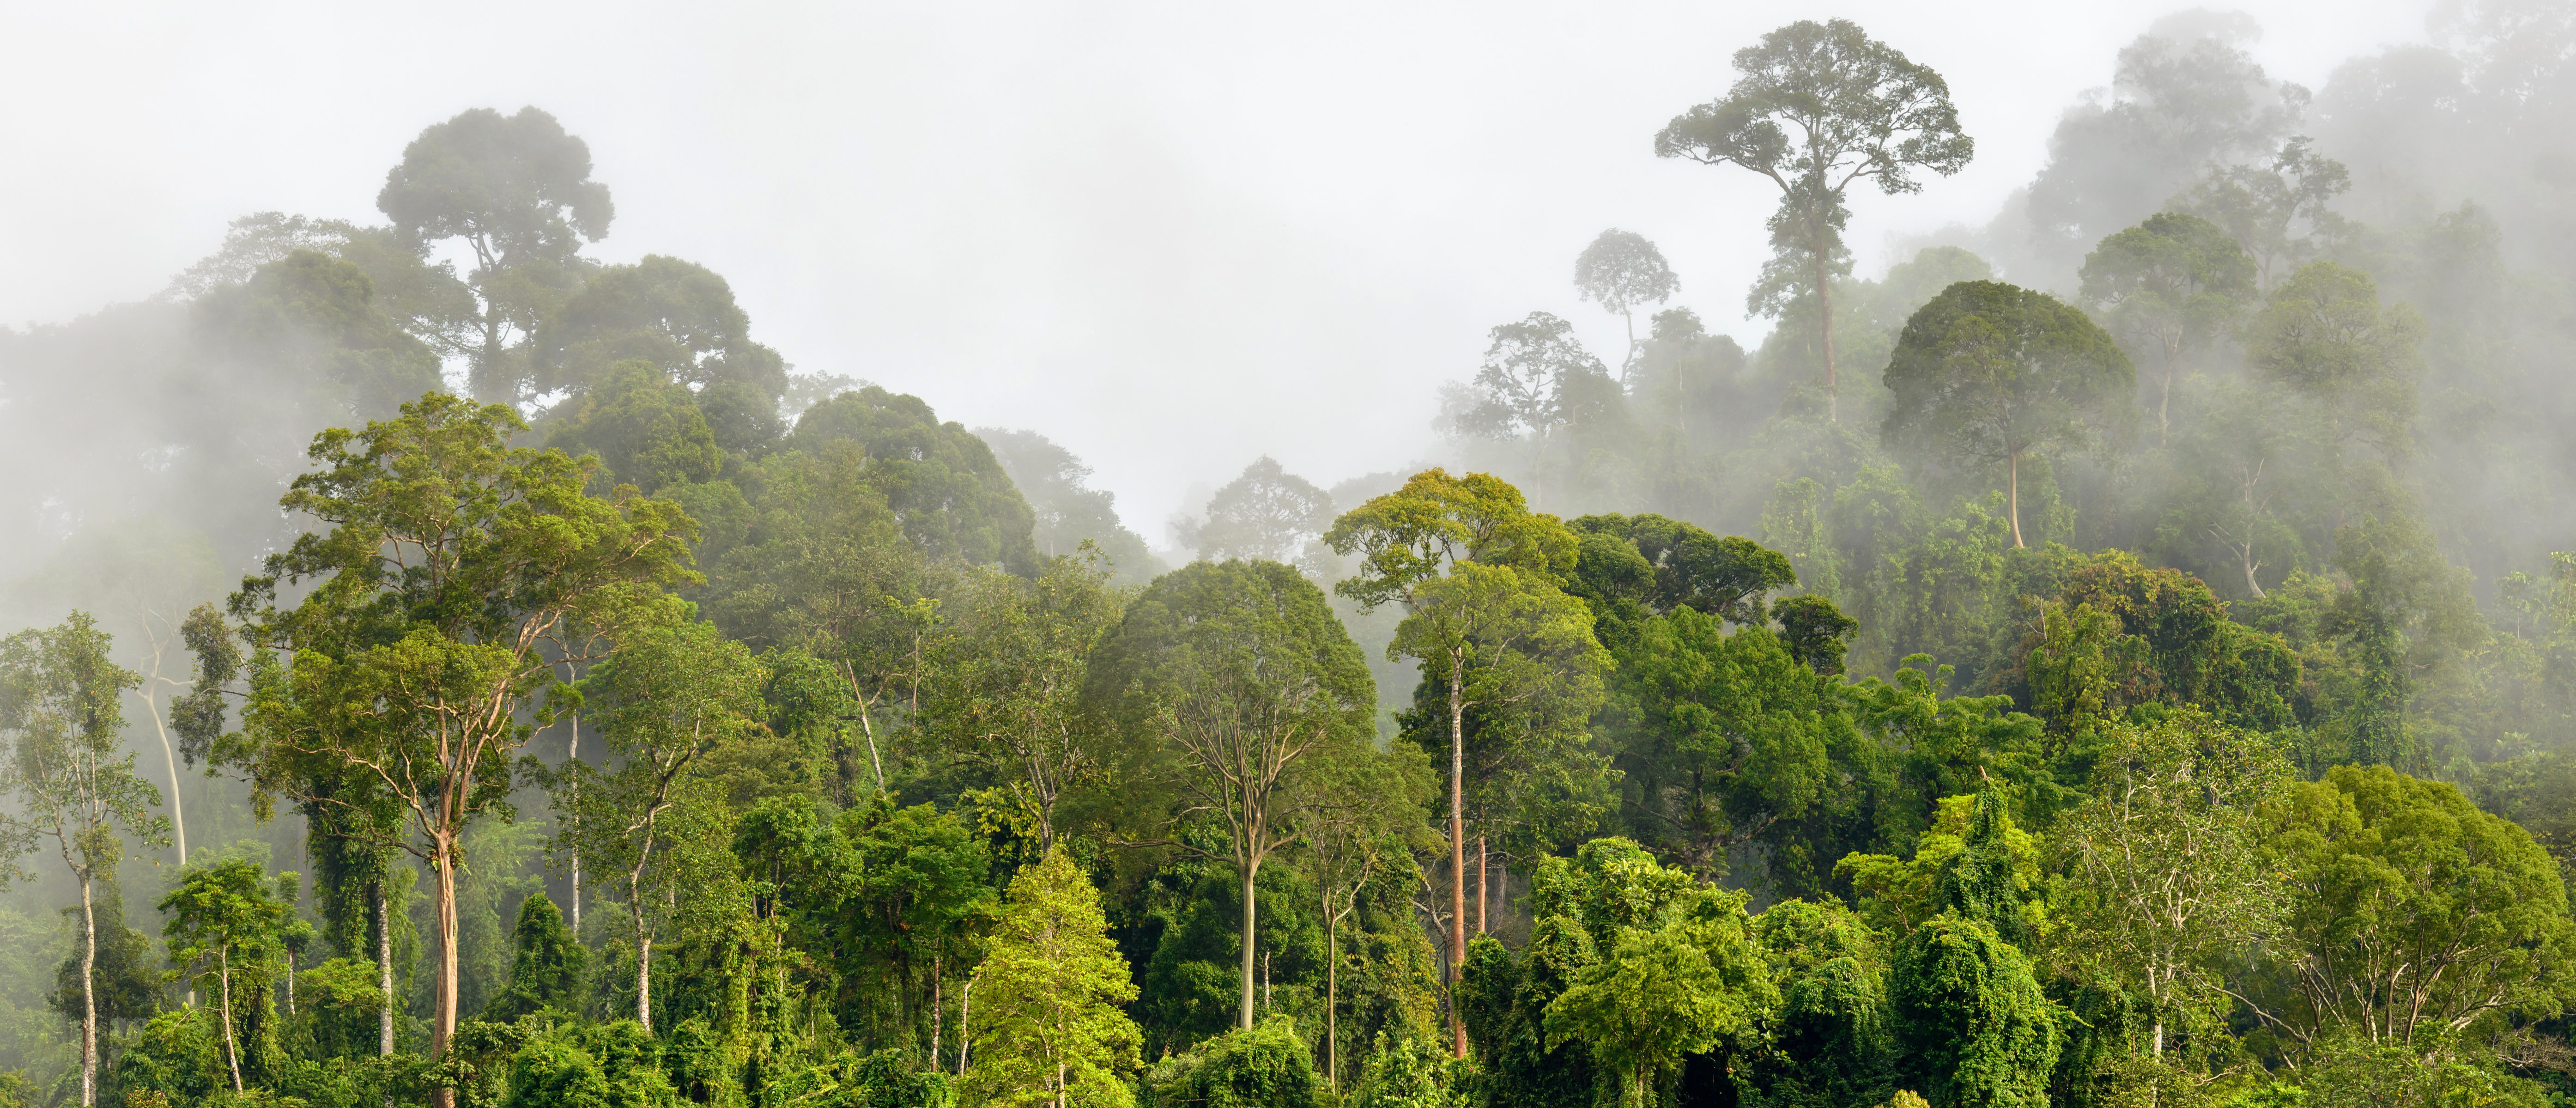 The rainforest in a fog. (Shutterstock)